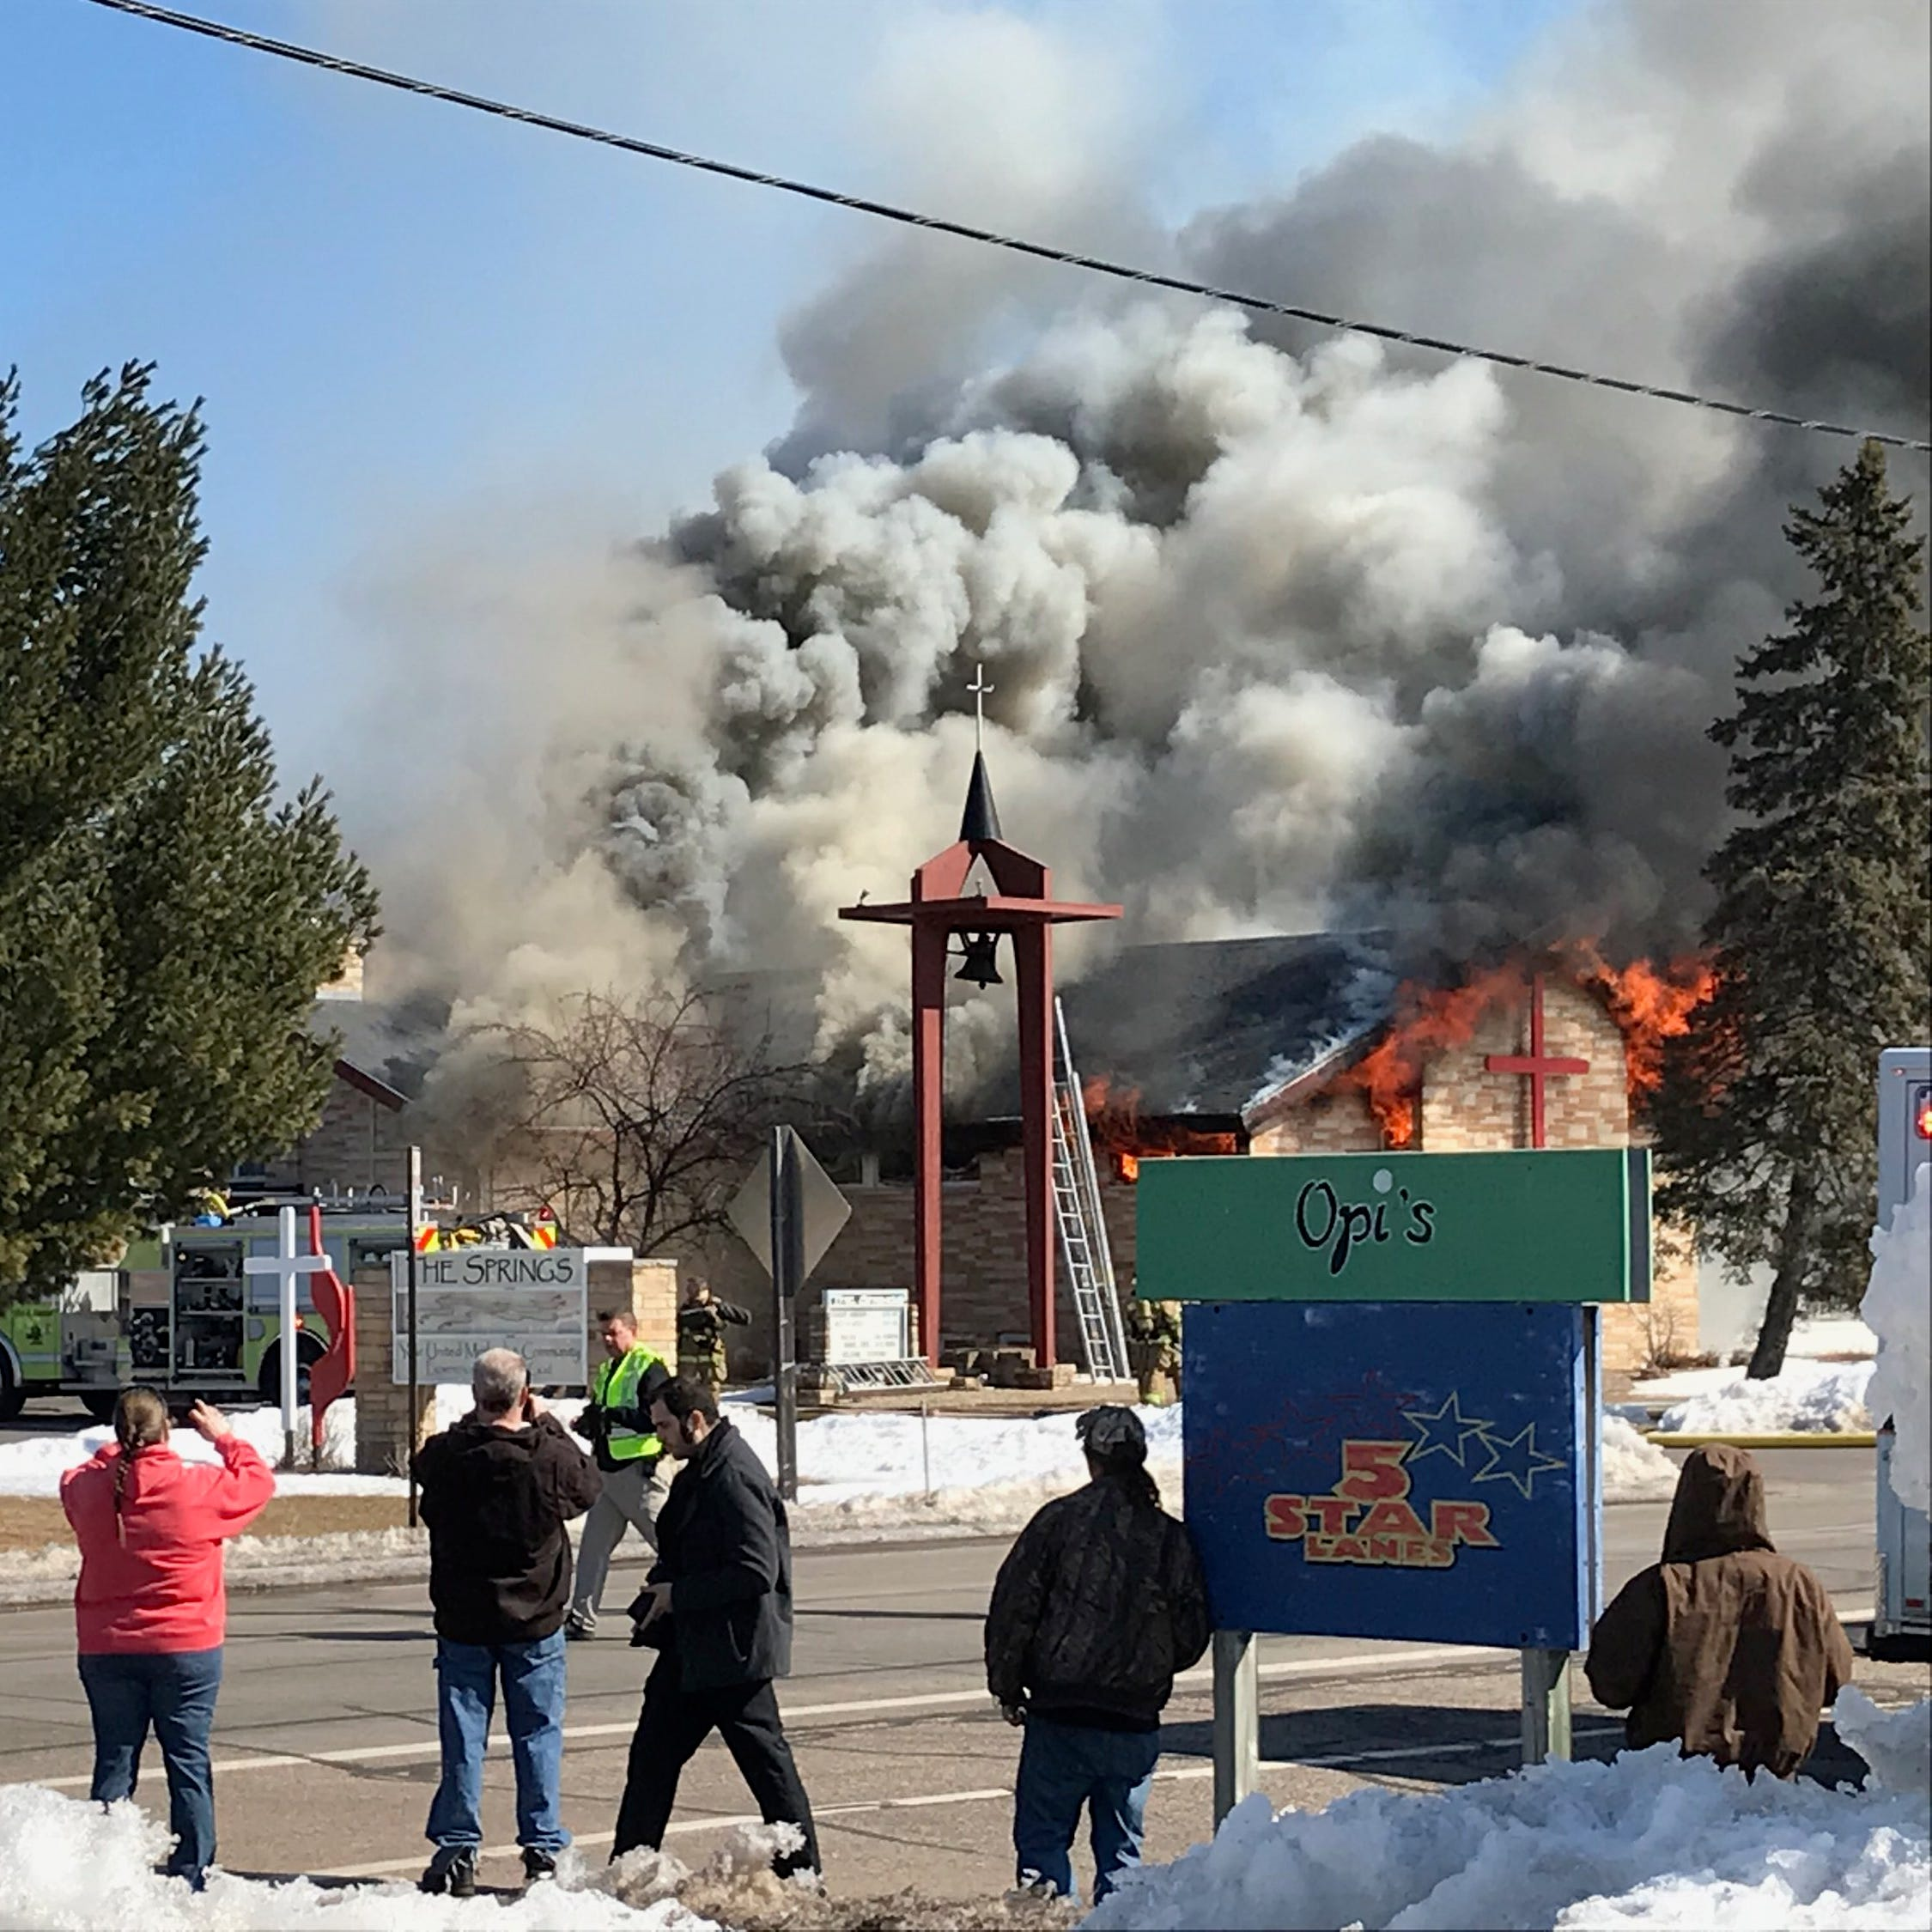 Emergency departments respond to fire at Plover church